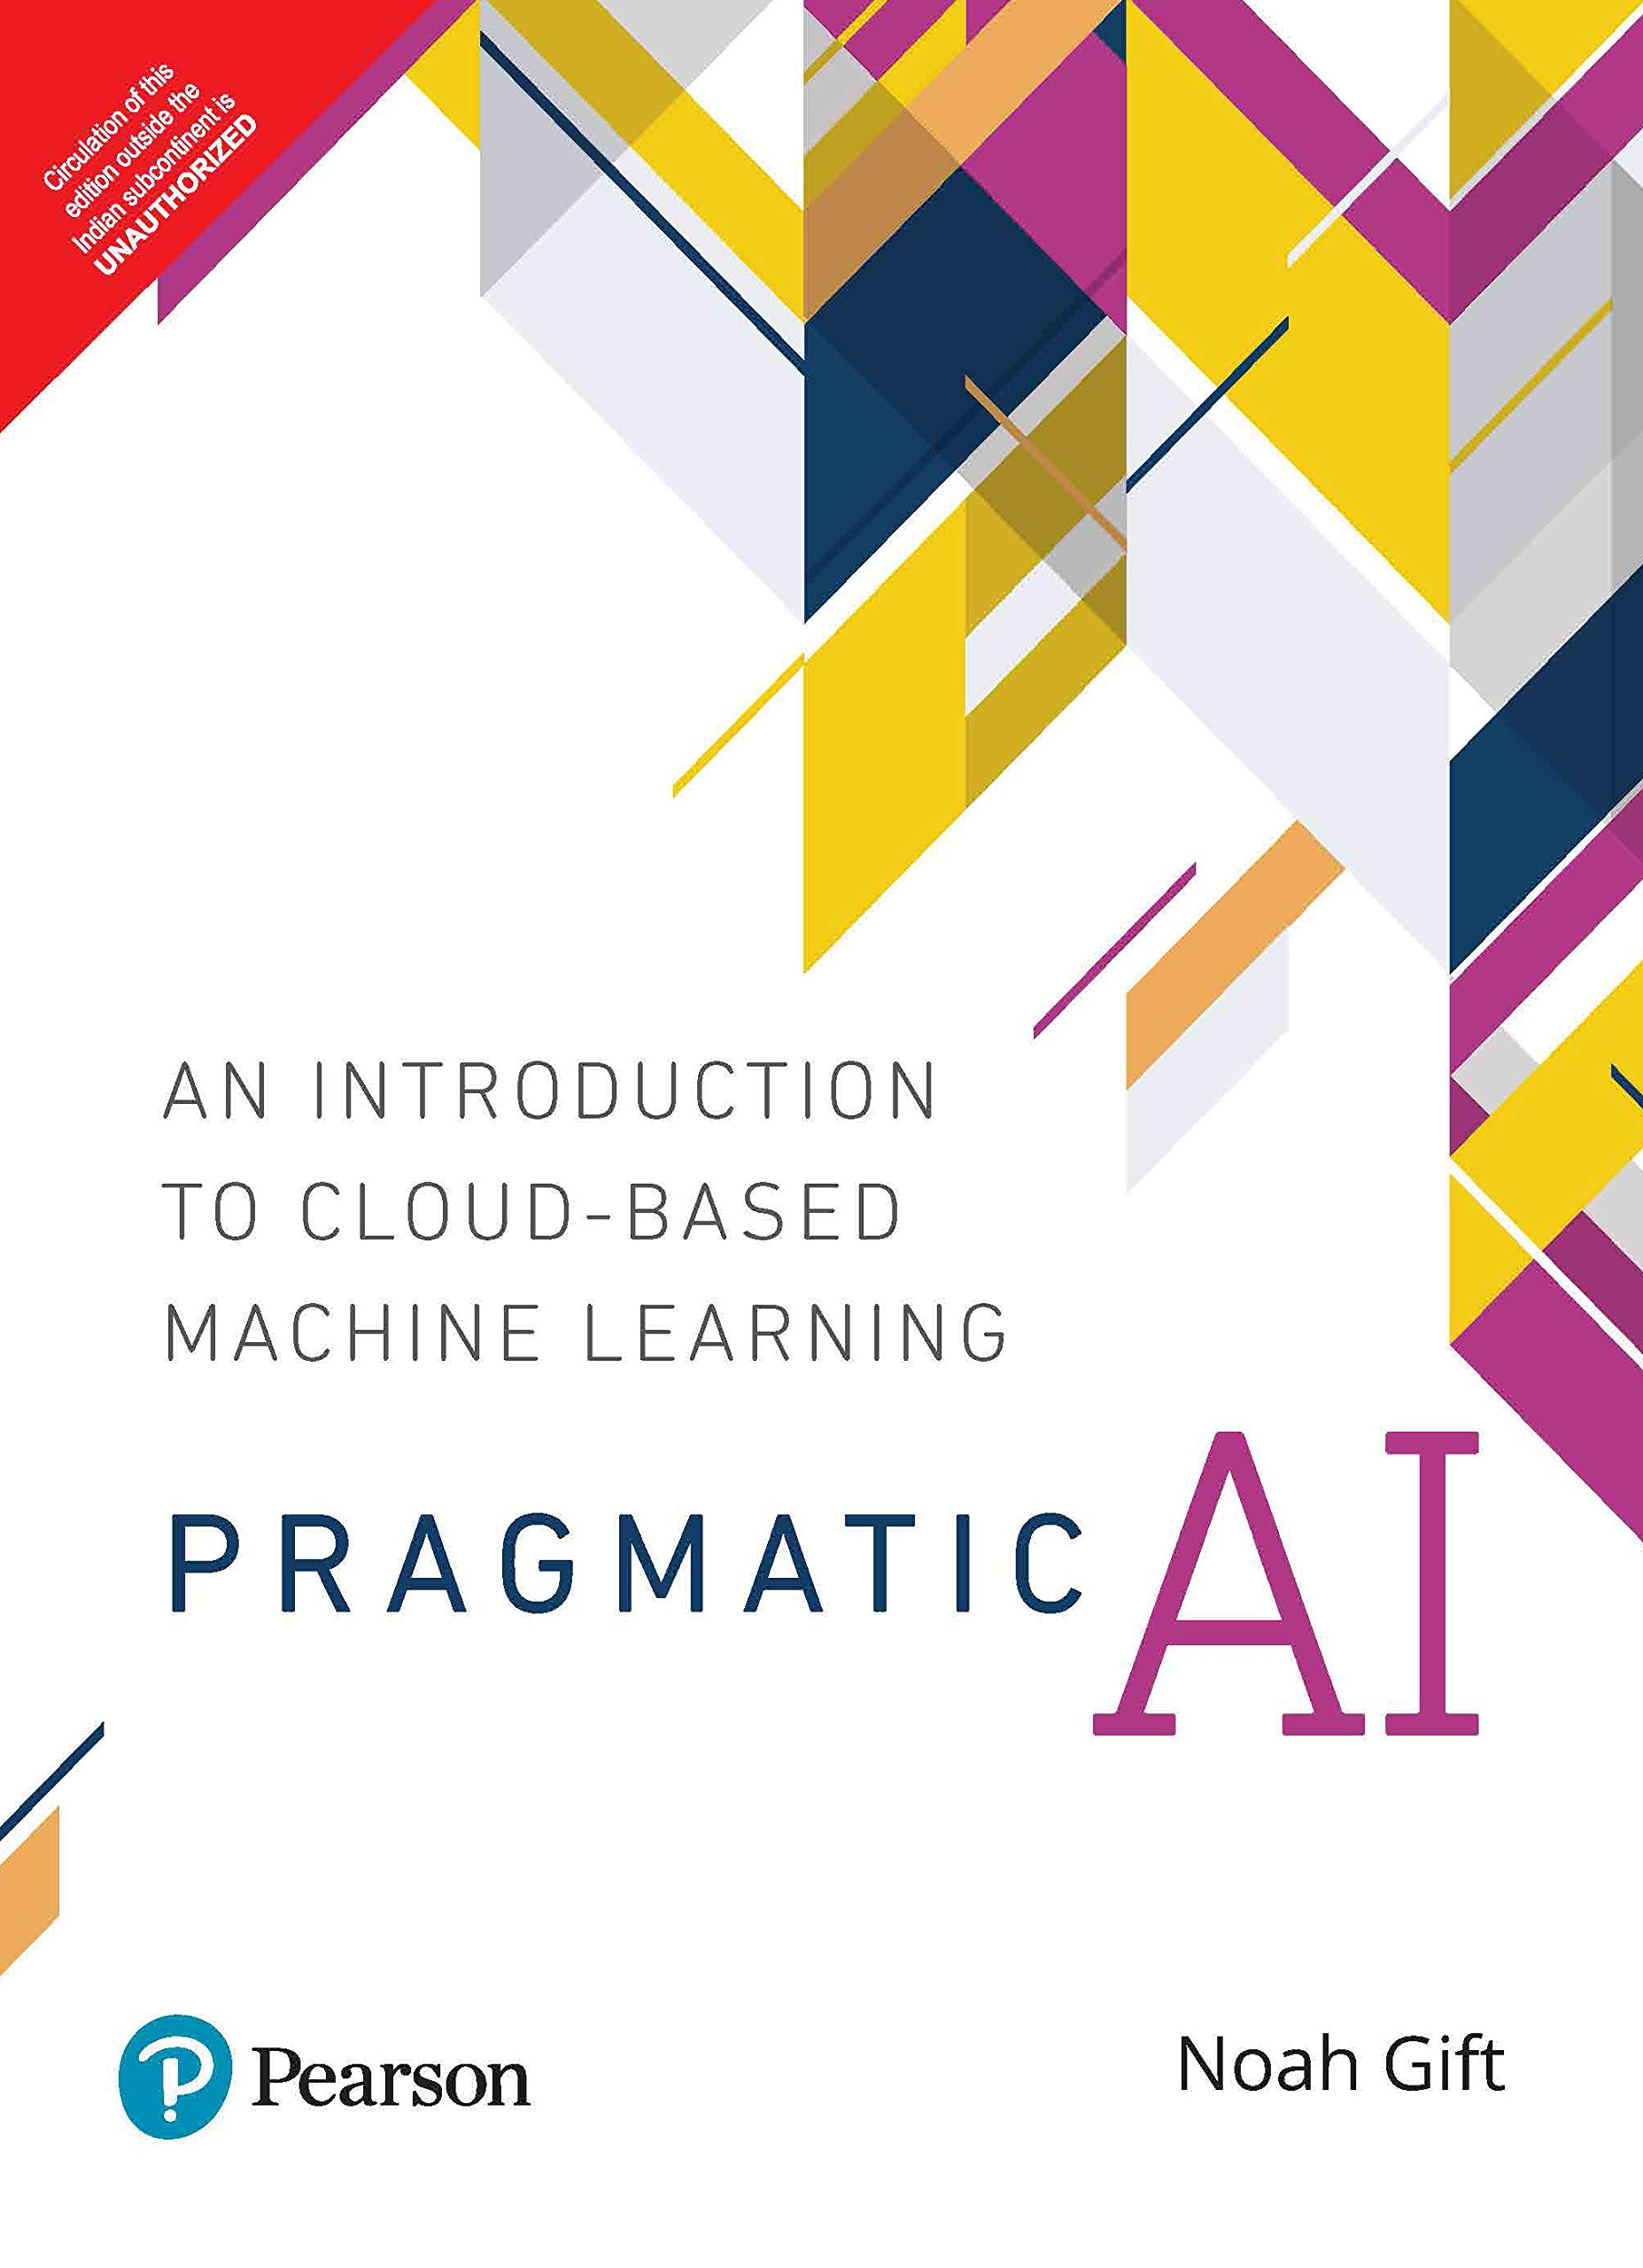 Pragmatic AI   An Introduction to Cloud-Based Machine Learning   First Edition   By Pearson